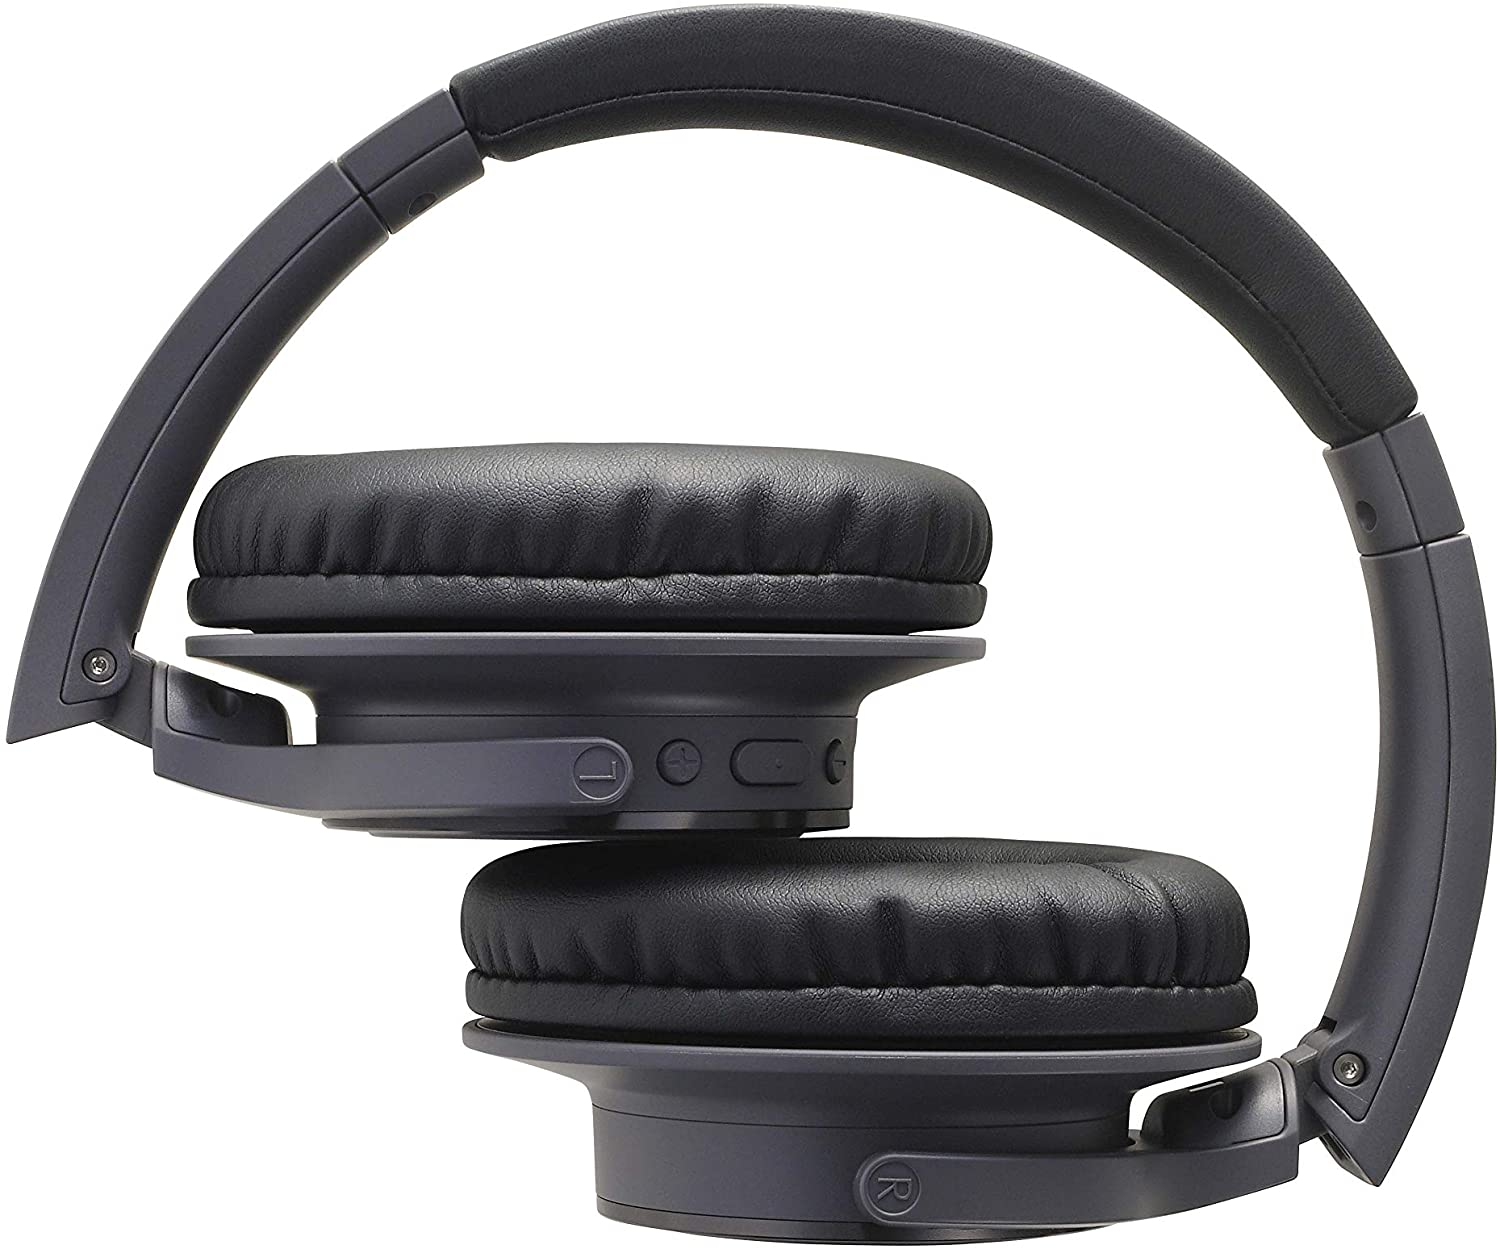 audio-technica-ath-sr30btbk-wireless-over-ear-headphones-2020-10-15